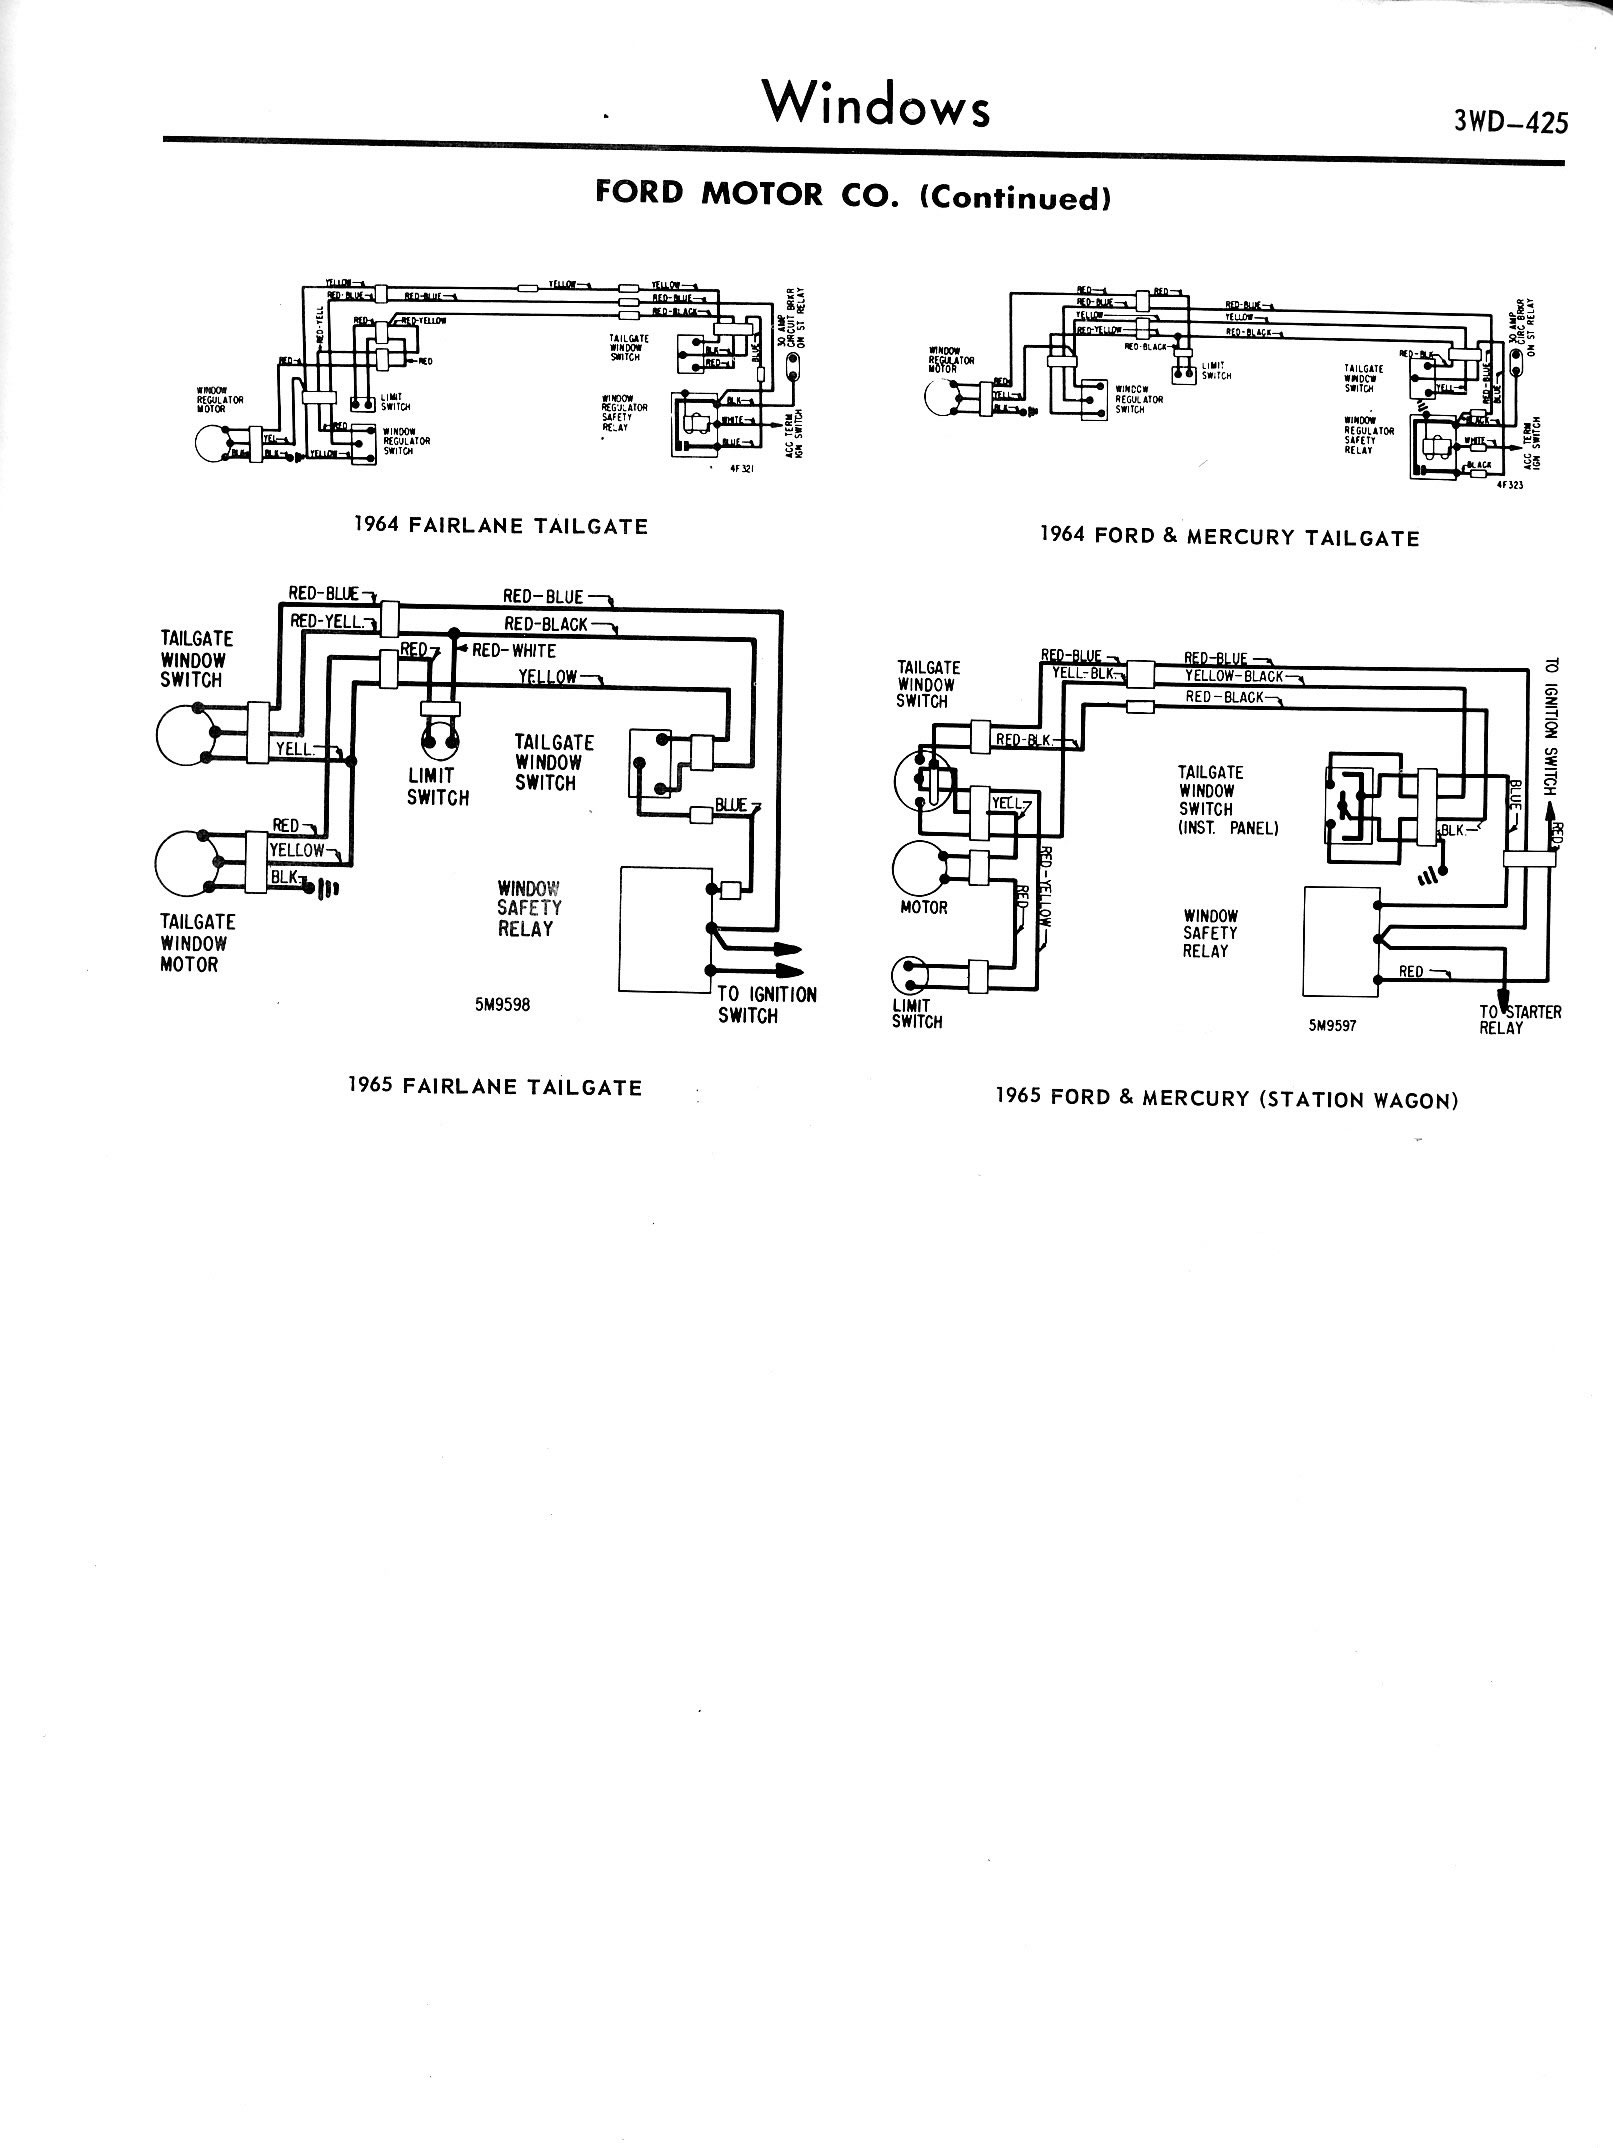 1964 ford fairlane 500 wiring diagram venn with lines 56 get free image about